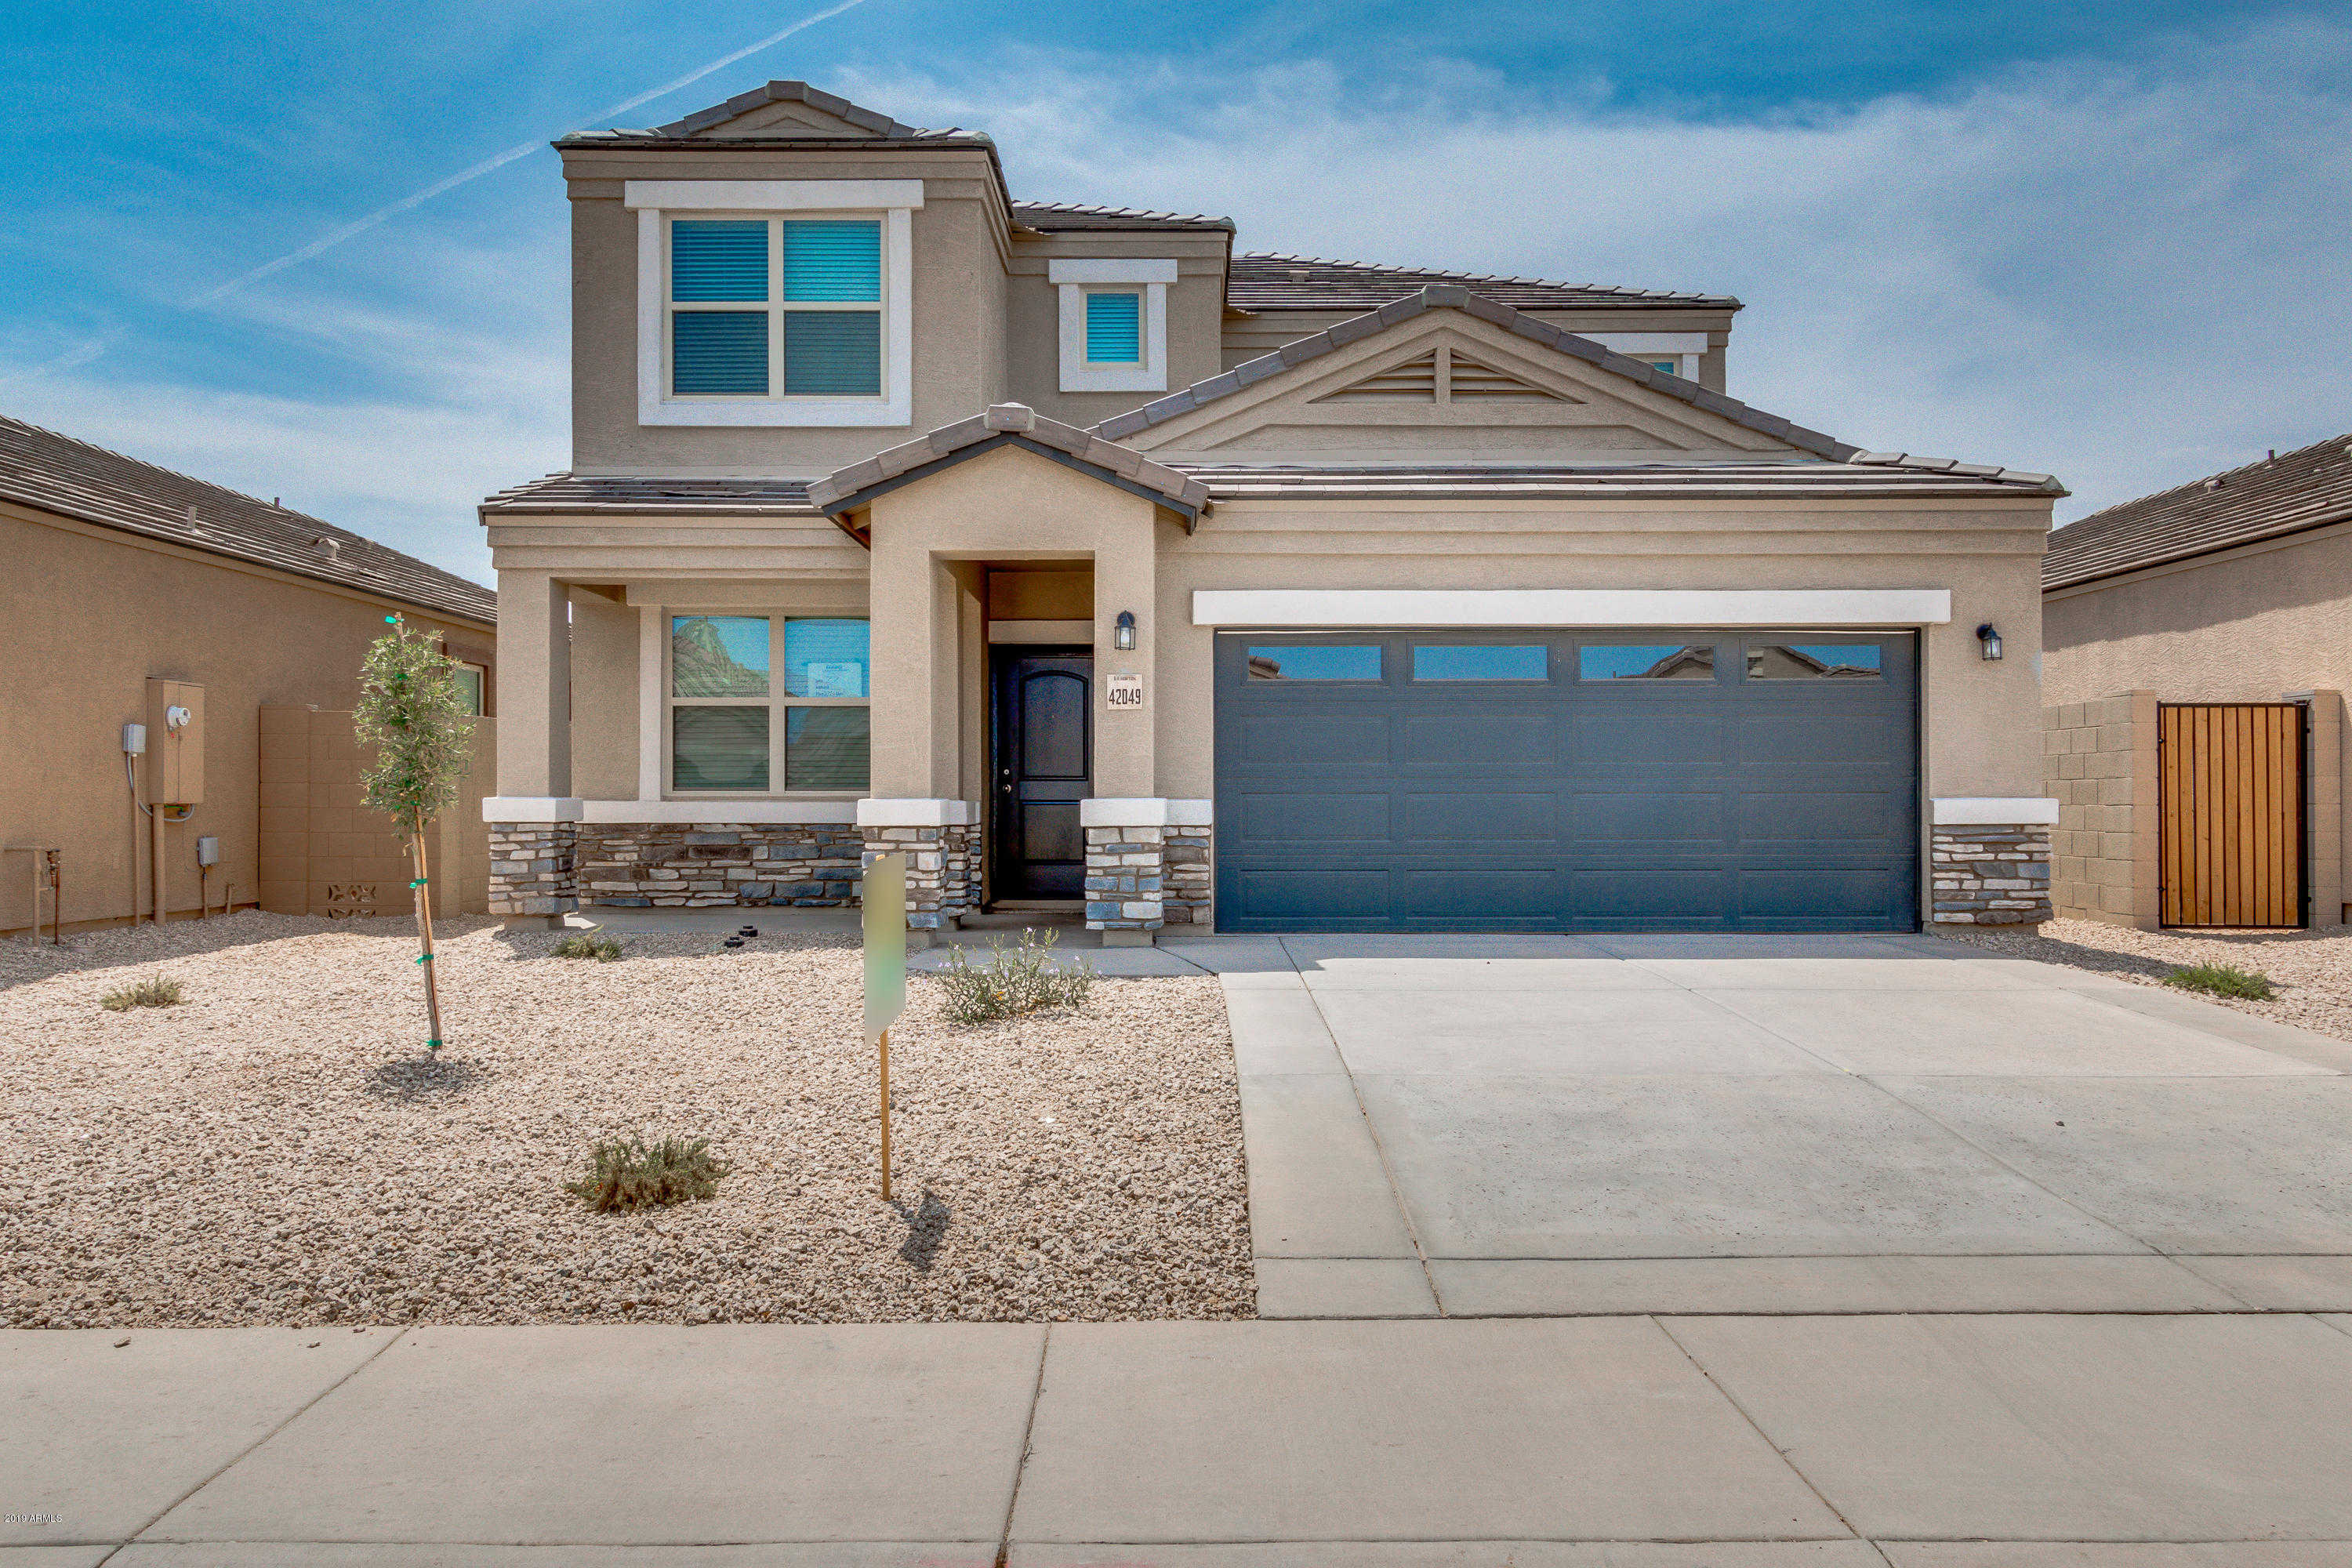 $500,365 - 4Br/4Ba - Home for Sale in Copperhead At Norterra At Fireside, Phoenix